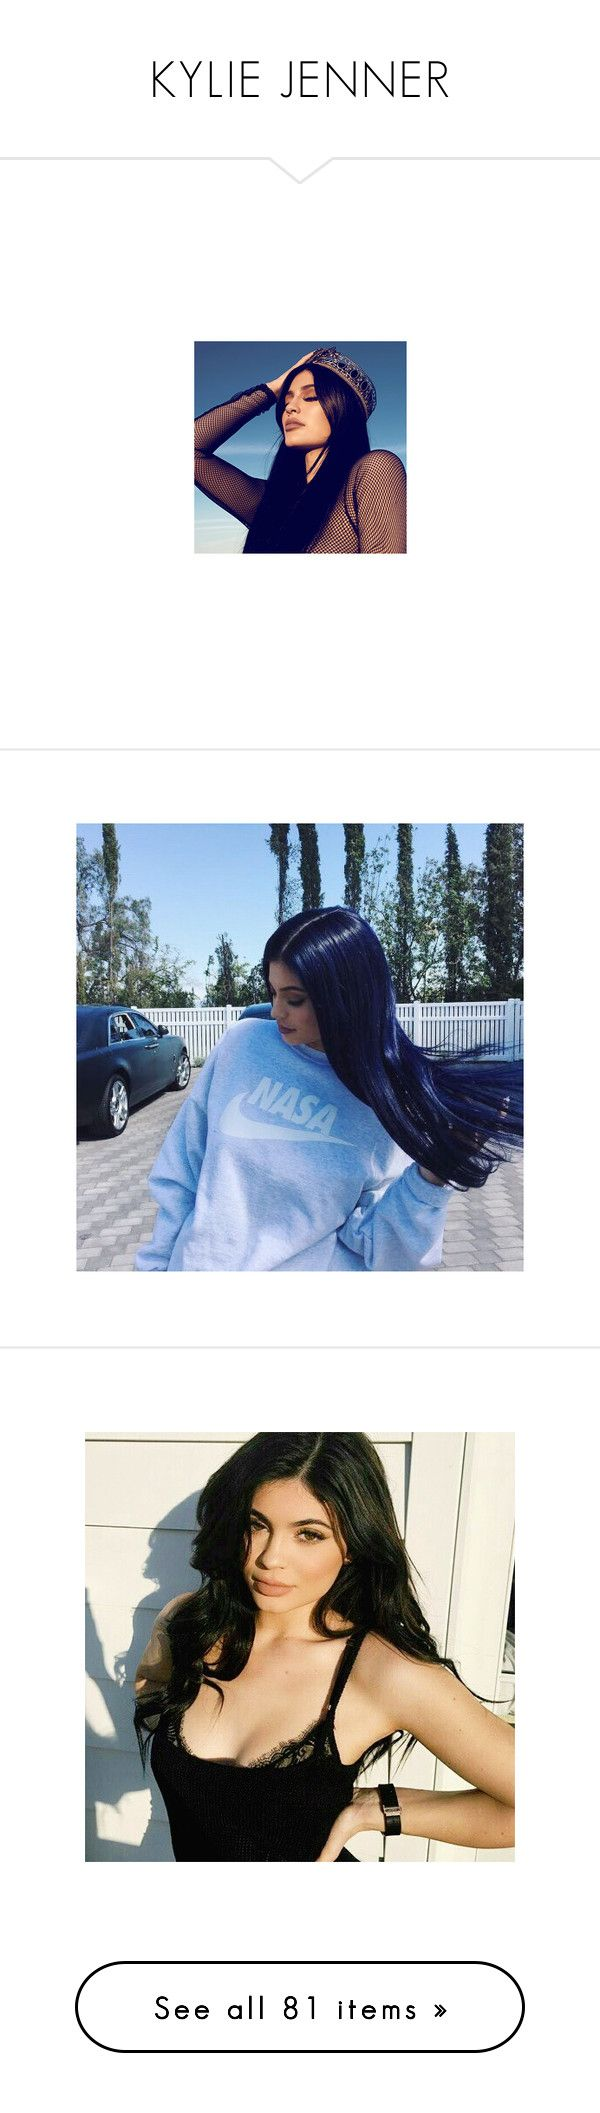 """""""KYLIE JENNER"""" by bruna-cortes ❤ liked on Polyvore featuring kendall jenner, accessories, kylie jenner, beauty products, kylie, hair and costumes"""